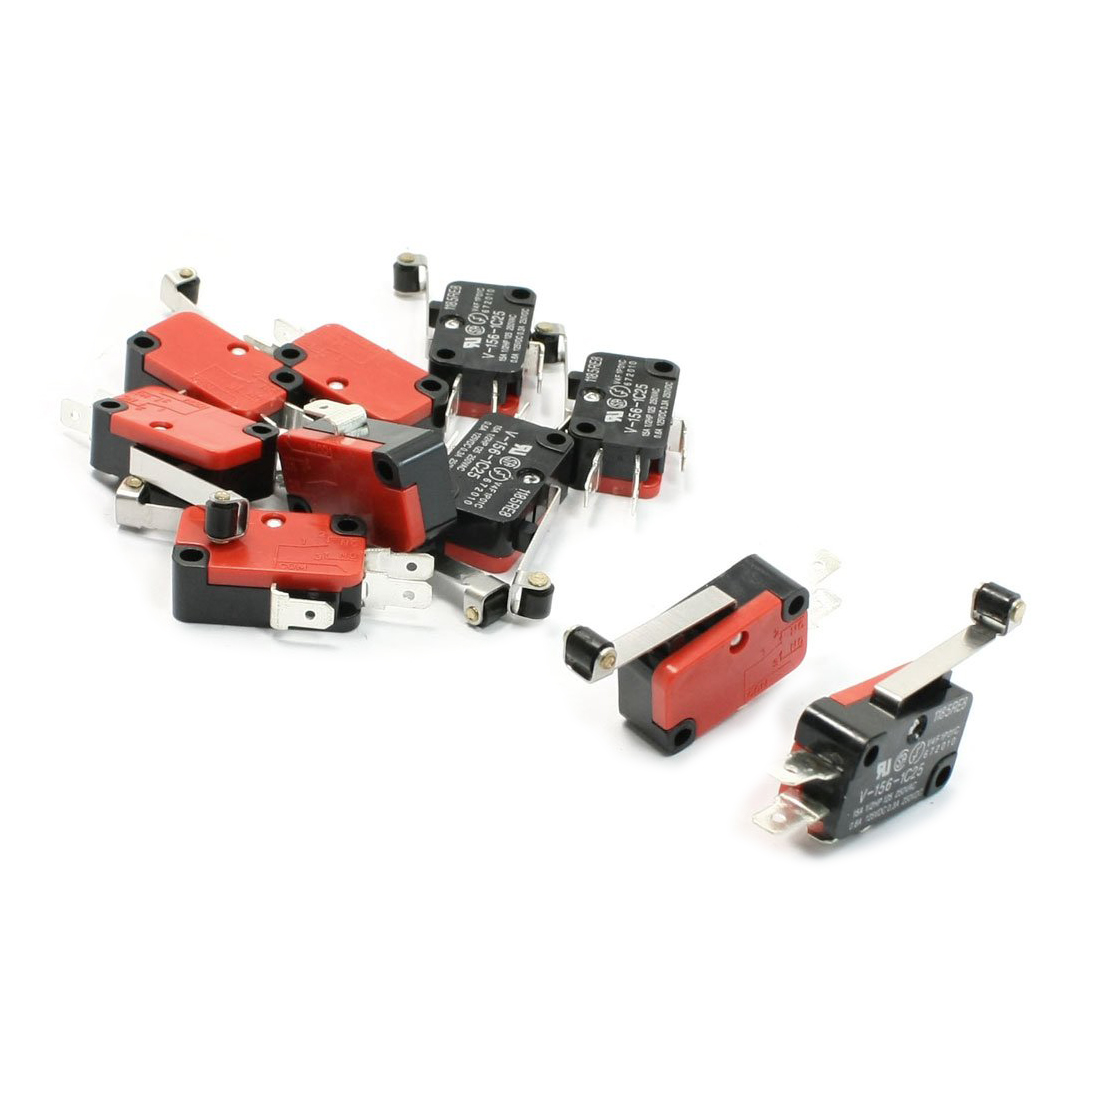 все цены на  Promotion! 10 Pcs Micro Limit Switch Long Hinge Roller Lever Arm Snap Action LOT  онлайн